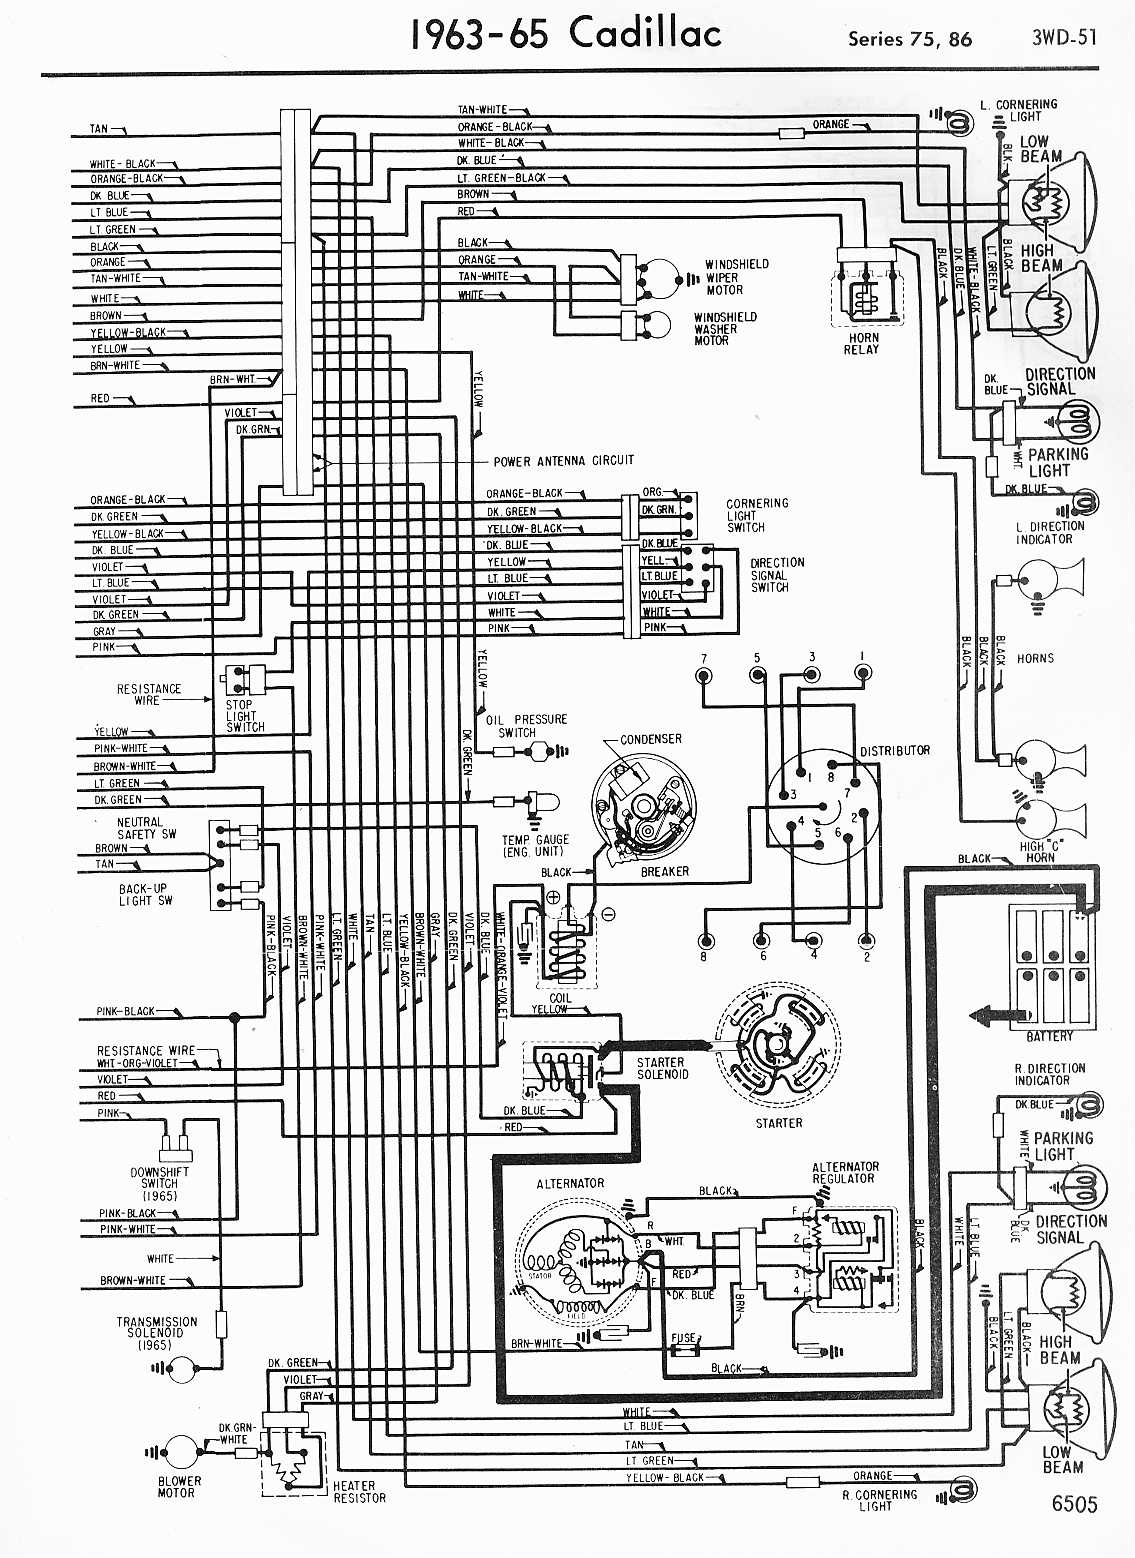 MWireCadi65_3WD 051 cadillac wiring harness ram truck wiring harness \u2022 wiring diagrams  at beritabola.co